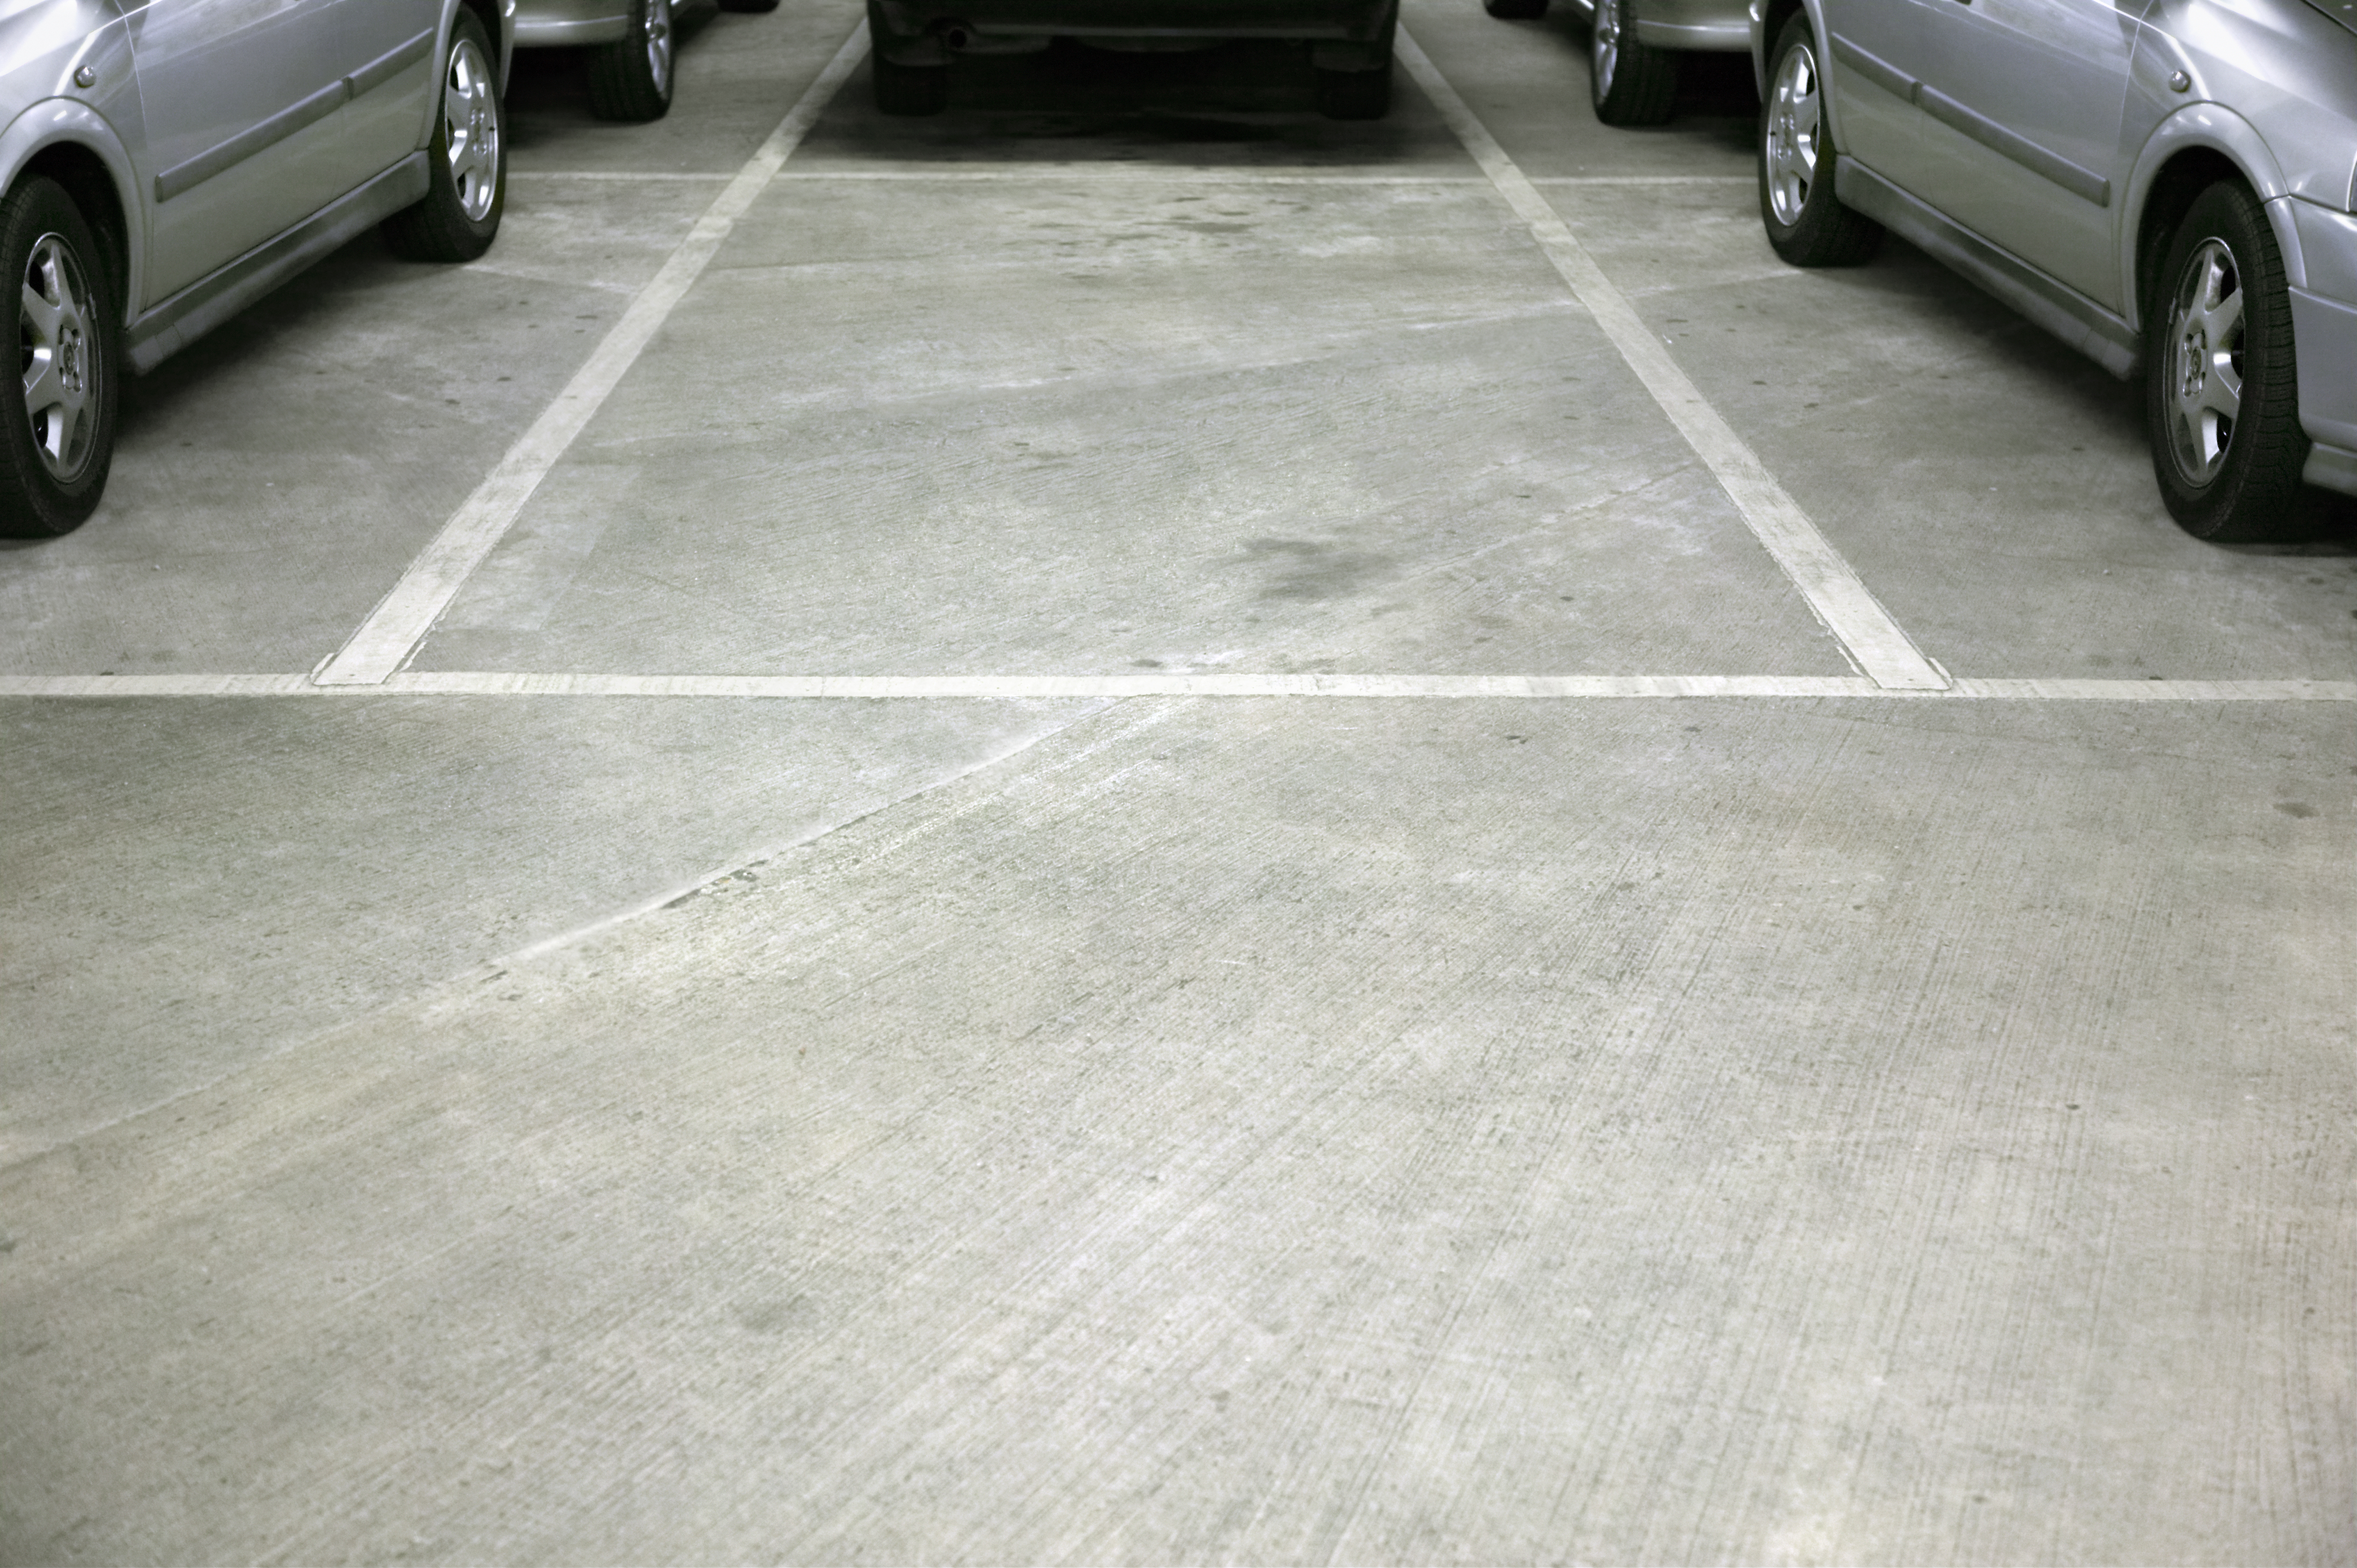 Empty space in car park